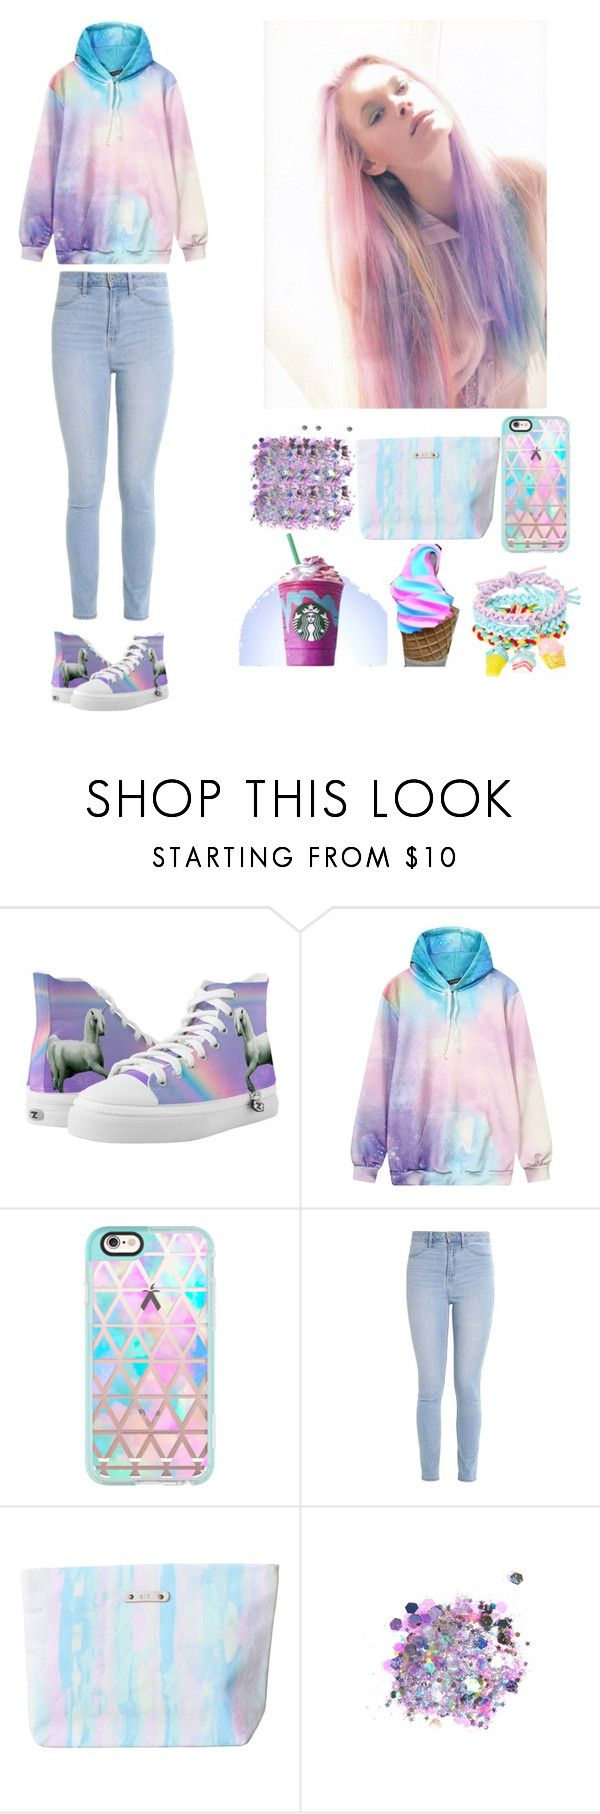 """""""Rainbow Outfit"""" by aspiringdesigner ❤ liked on Polyvore featuring Casetify, Hollister Co. and The Gypsy Shrine"""